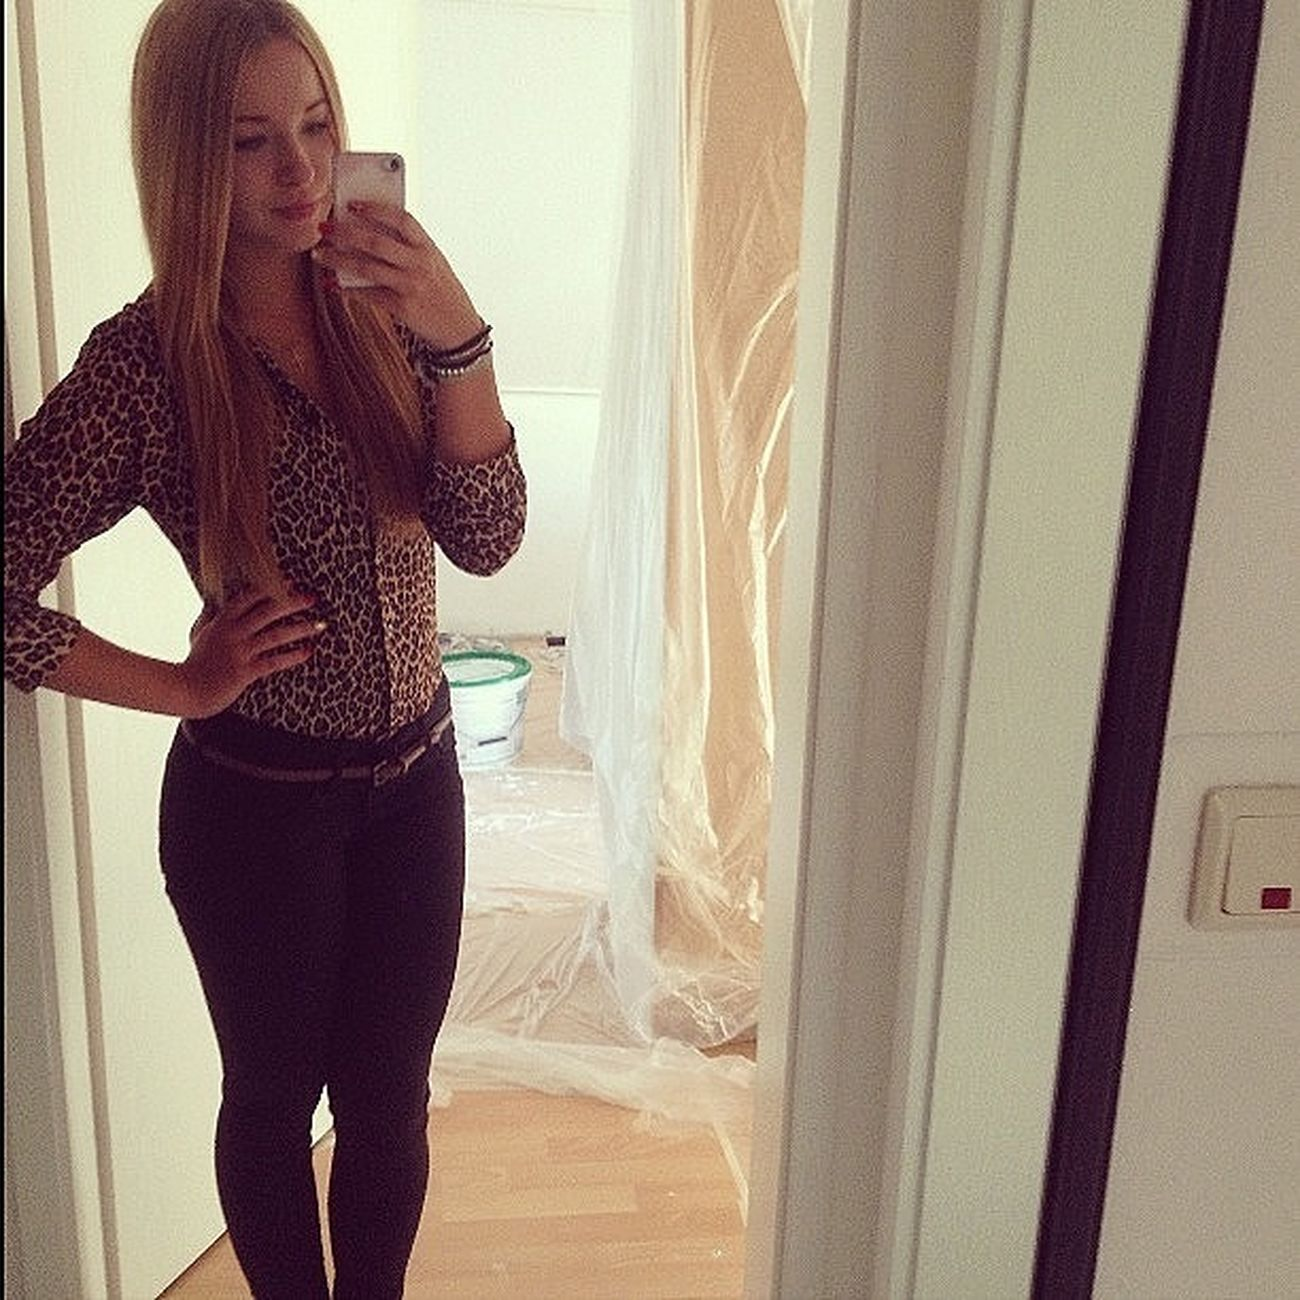 Helloworld Leopard Print Selfie Can't wait for my New room